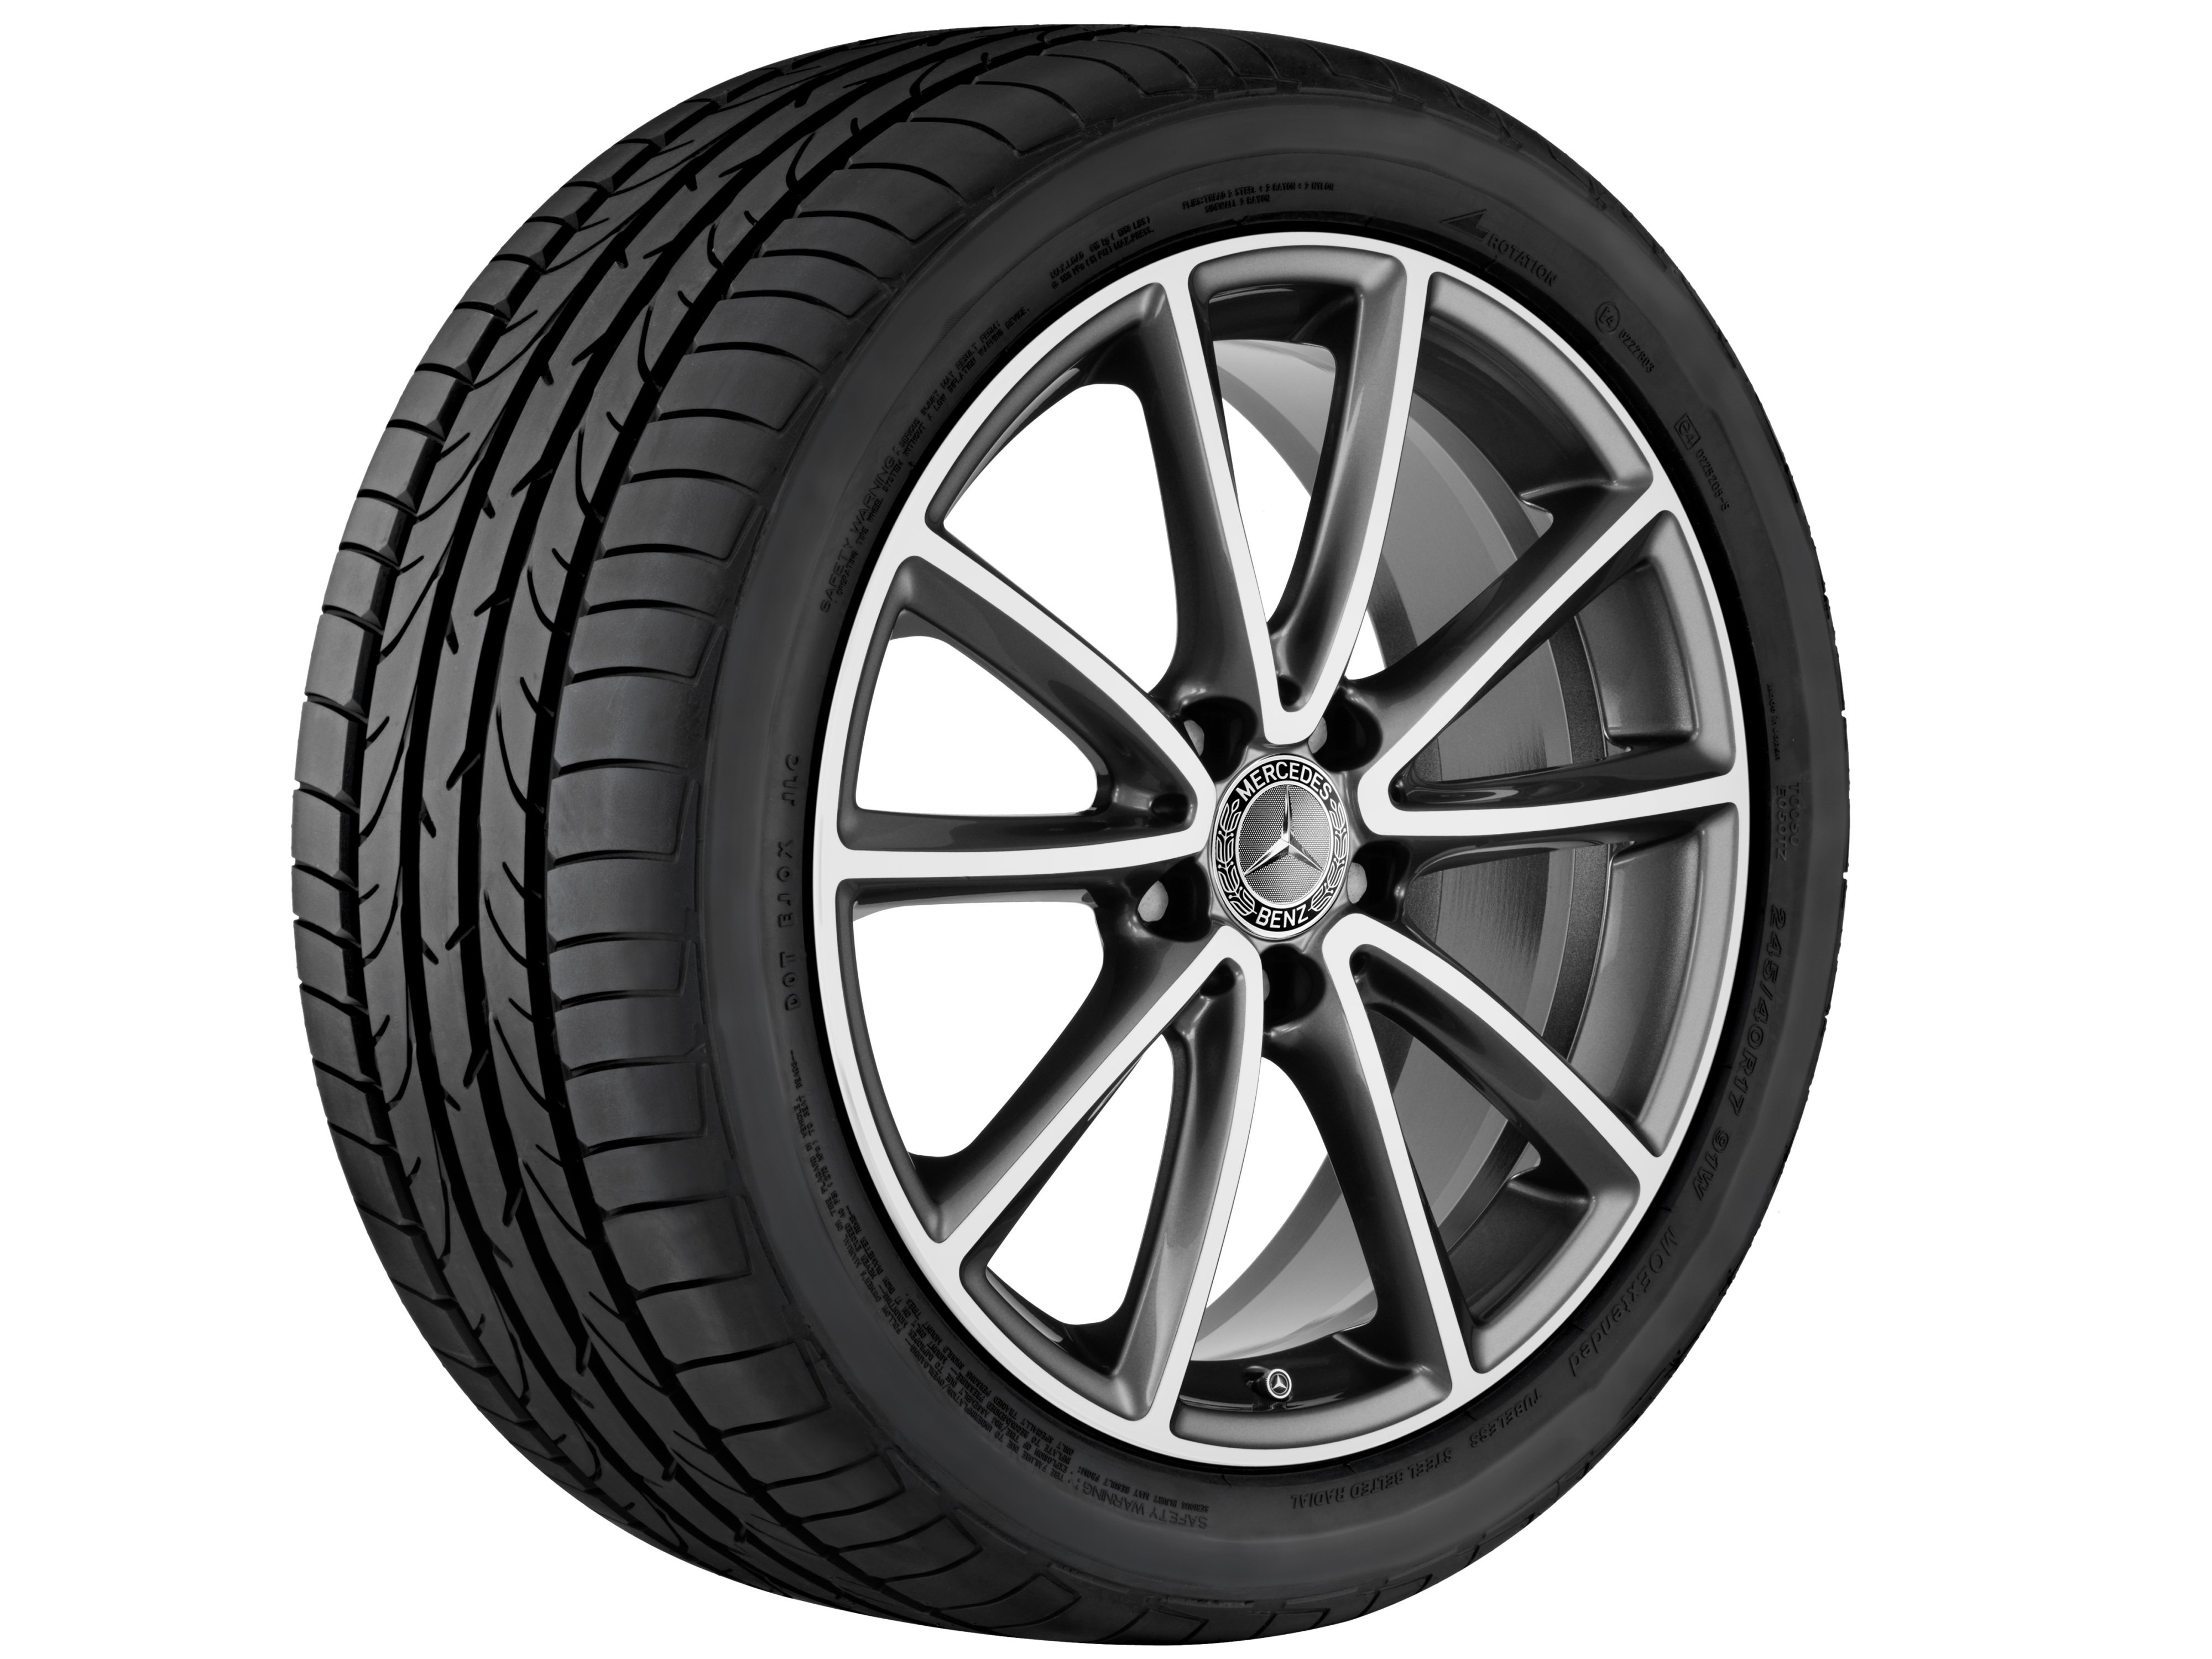 Mercedes benz introduces new alloy wheel collection image for Mag wheels for mercedes benz